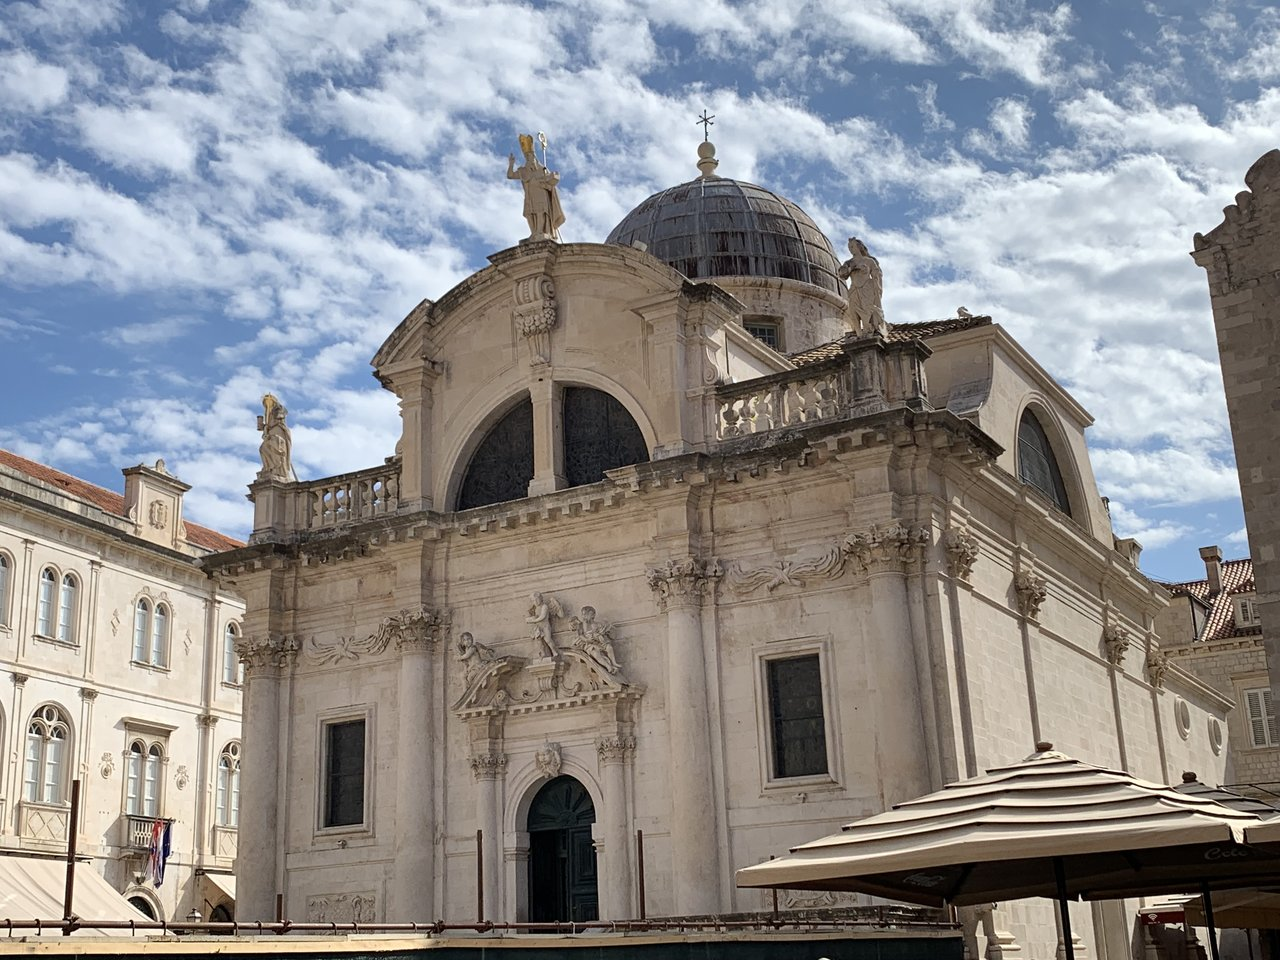 St Blaise's Church (saint and protector of Dubrovnik) | Photo taken by Eva W